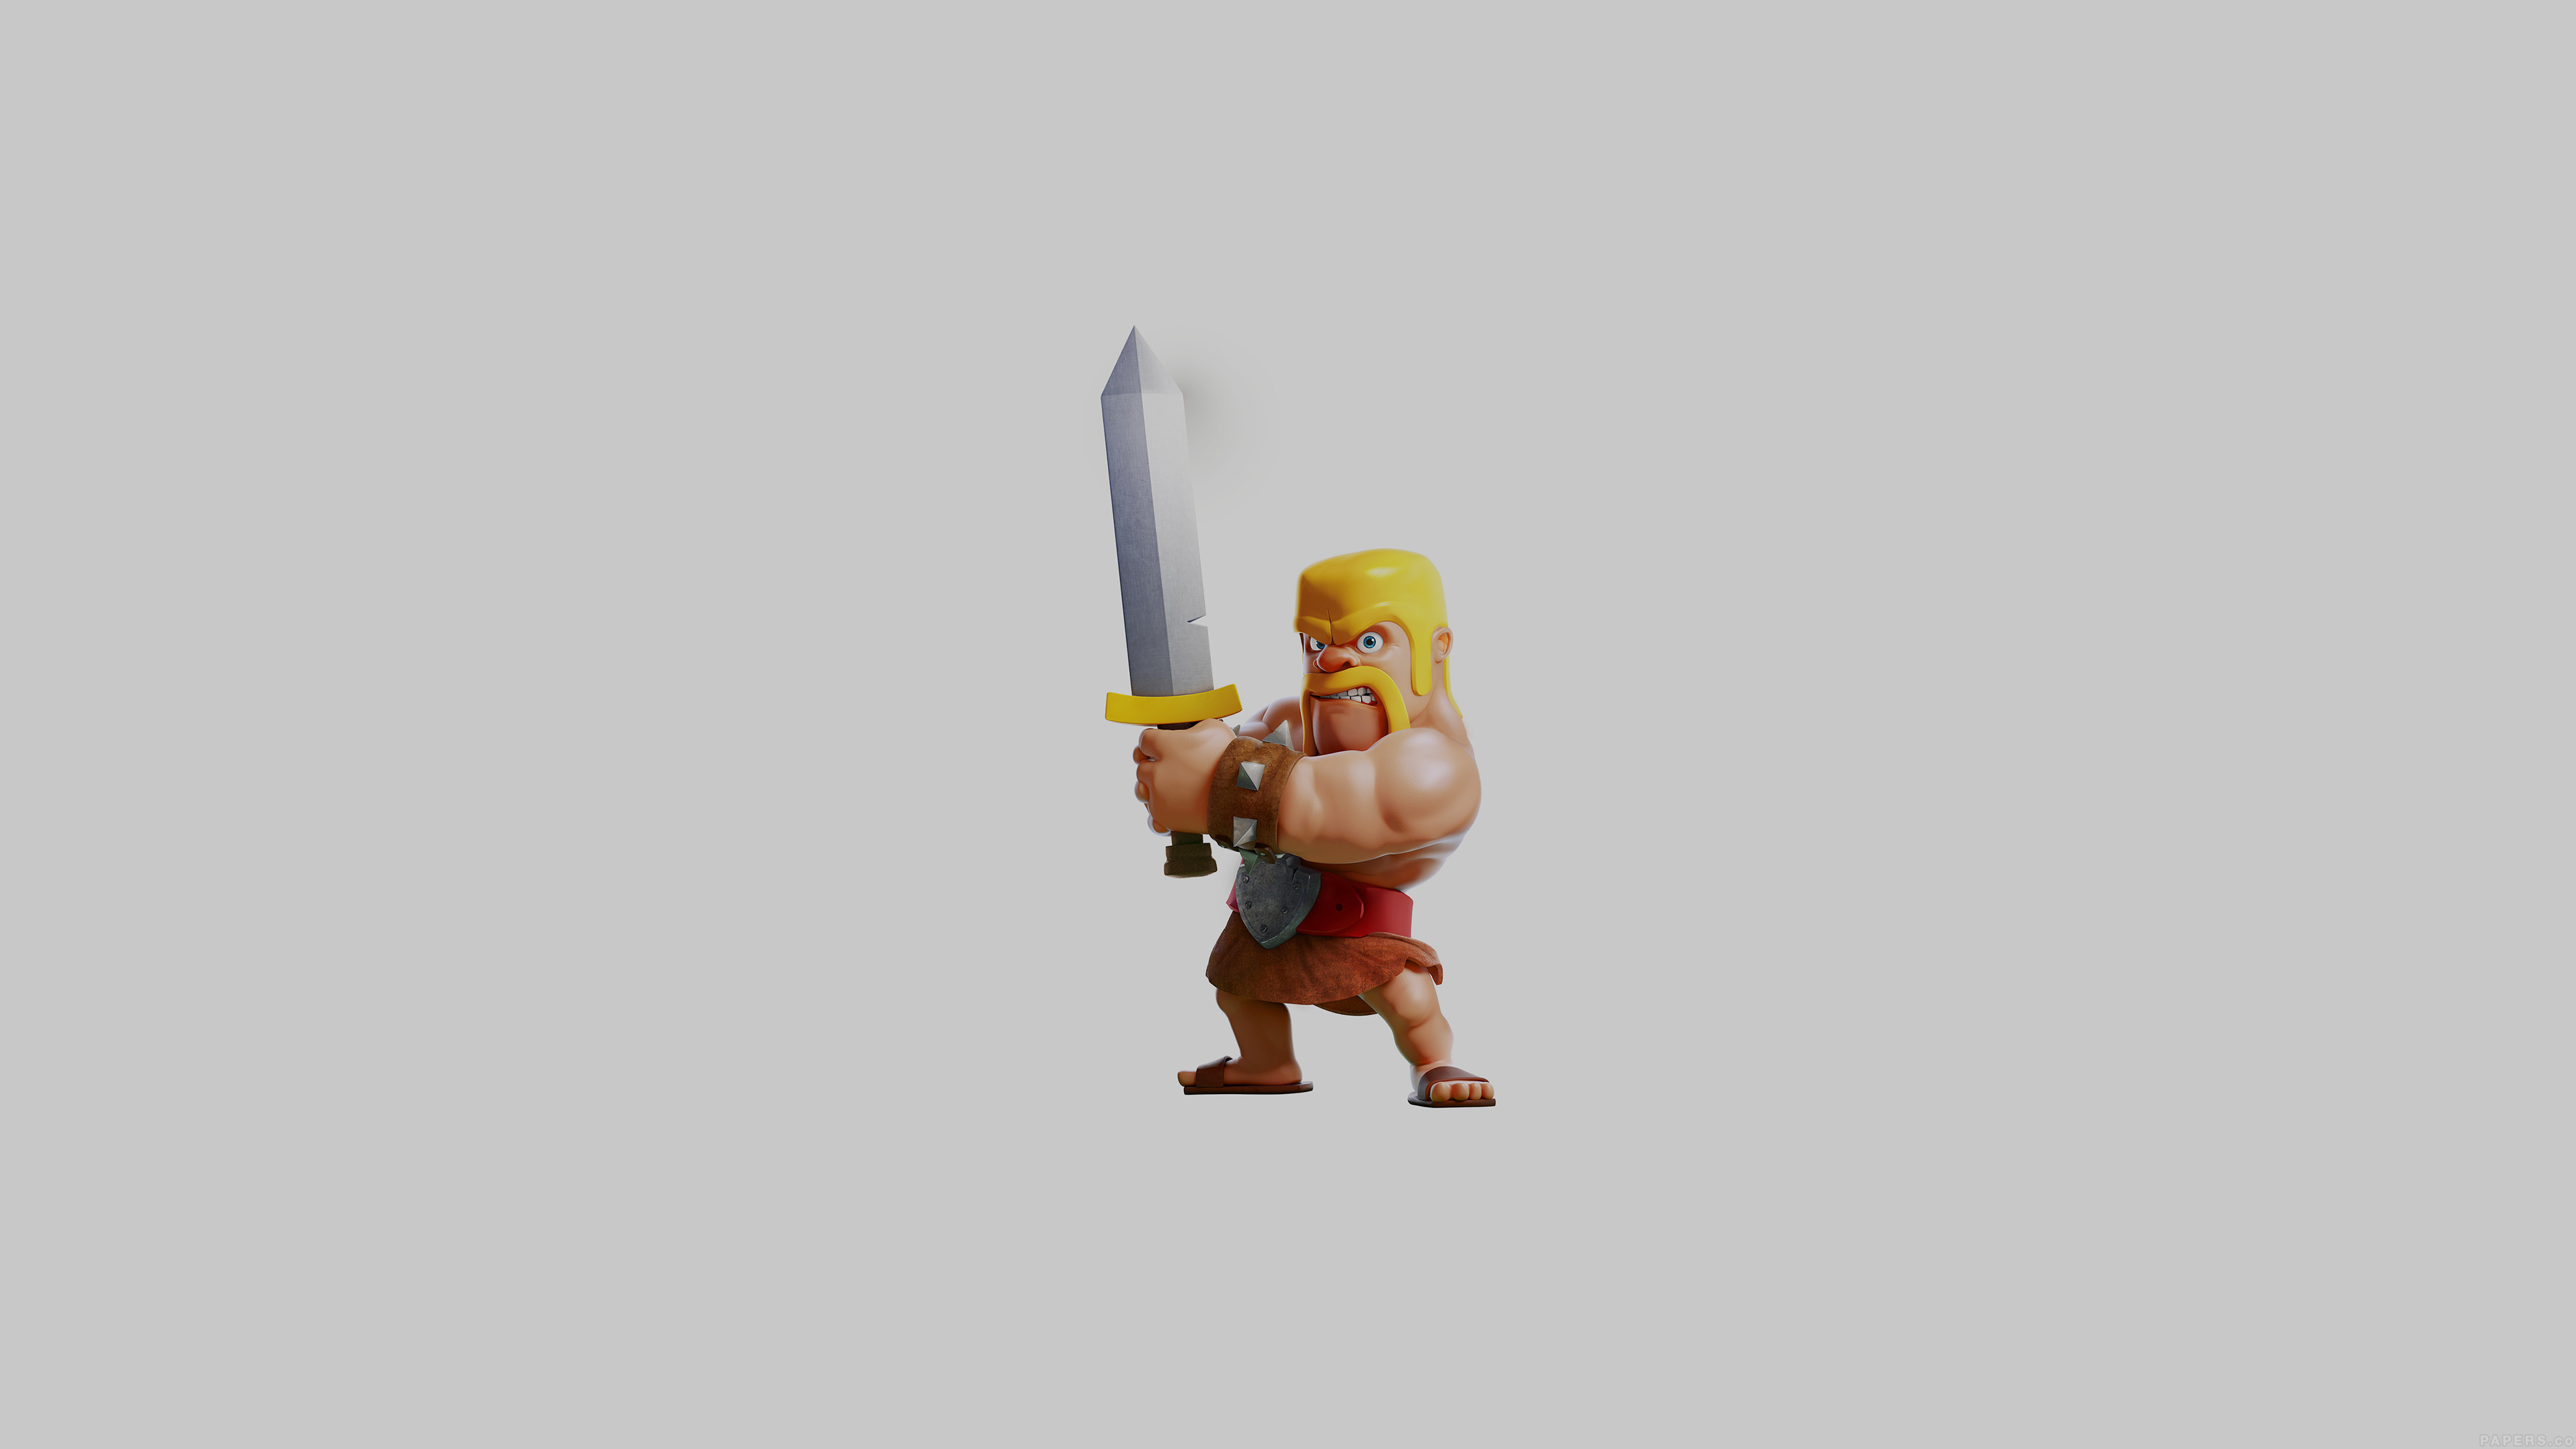 Barbarian Clash Of Clans Hd Hd Games 4k Wallpapers: 3840 X 2400